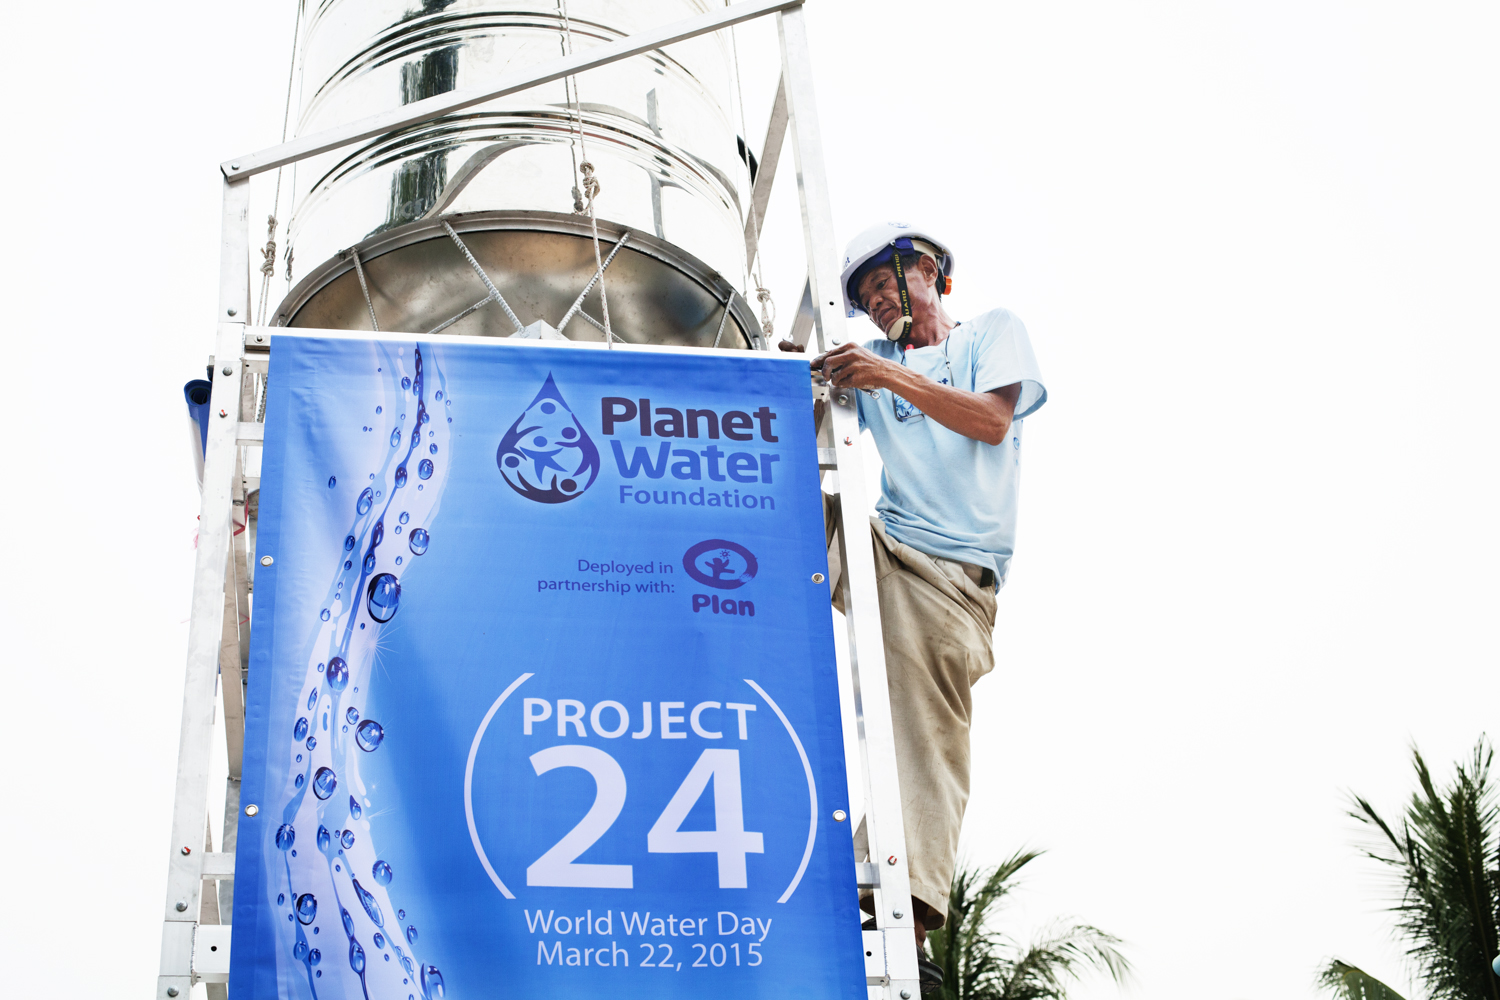 planetwater-10.jpg